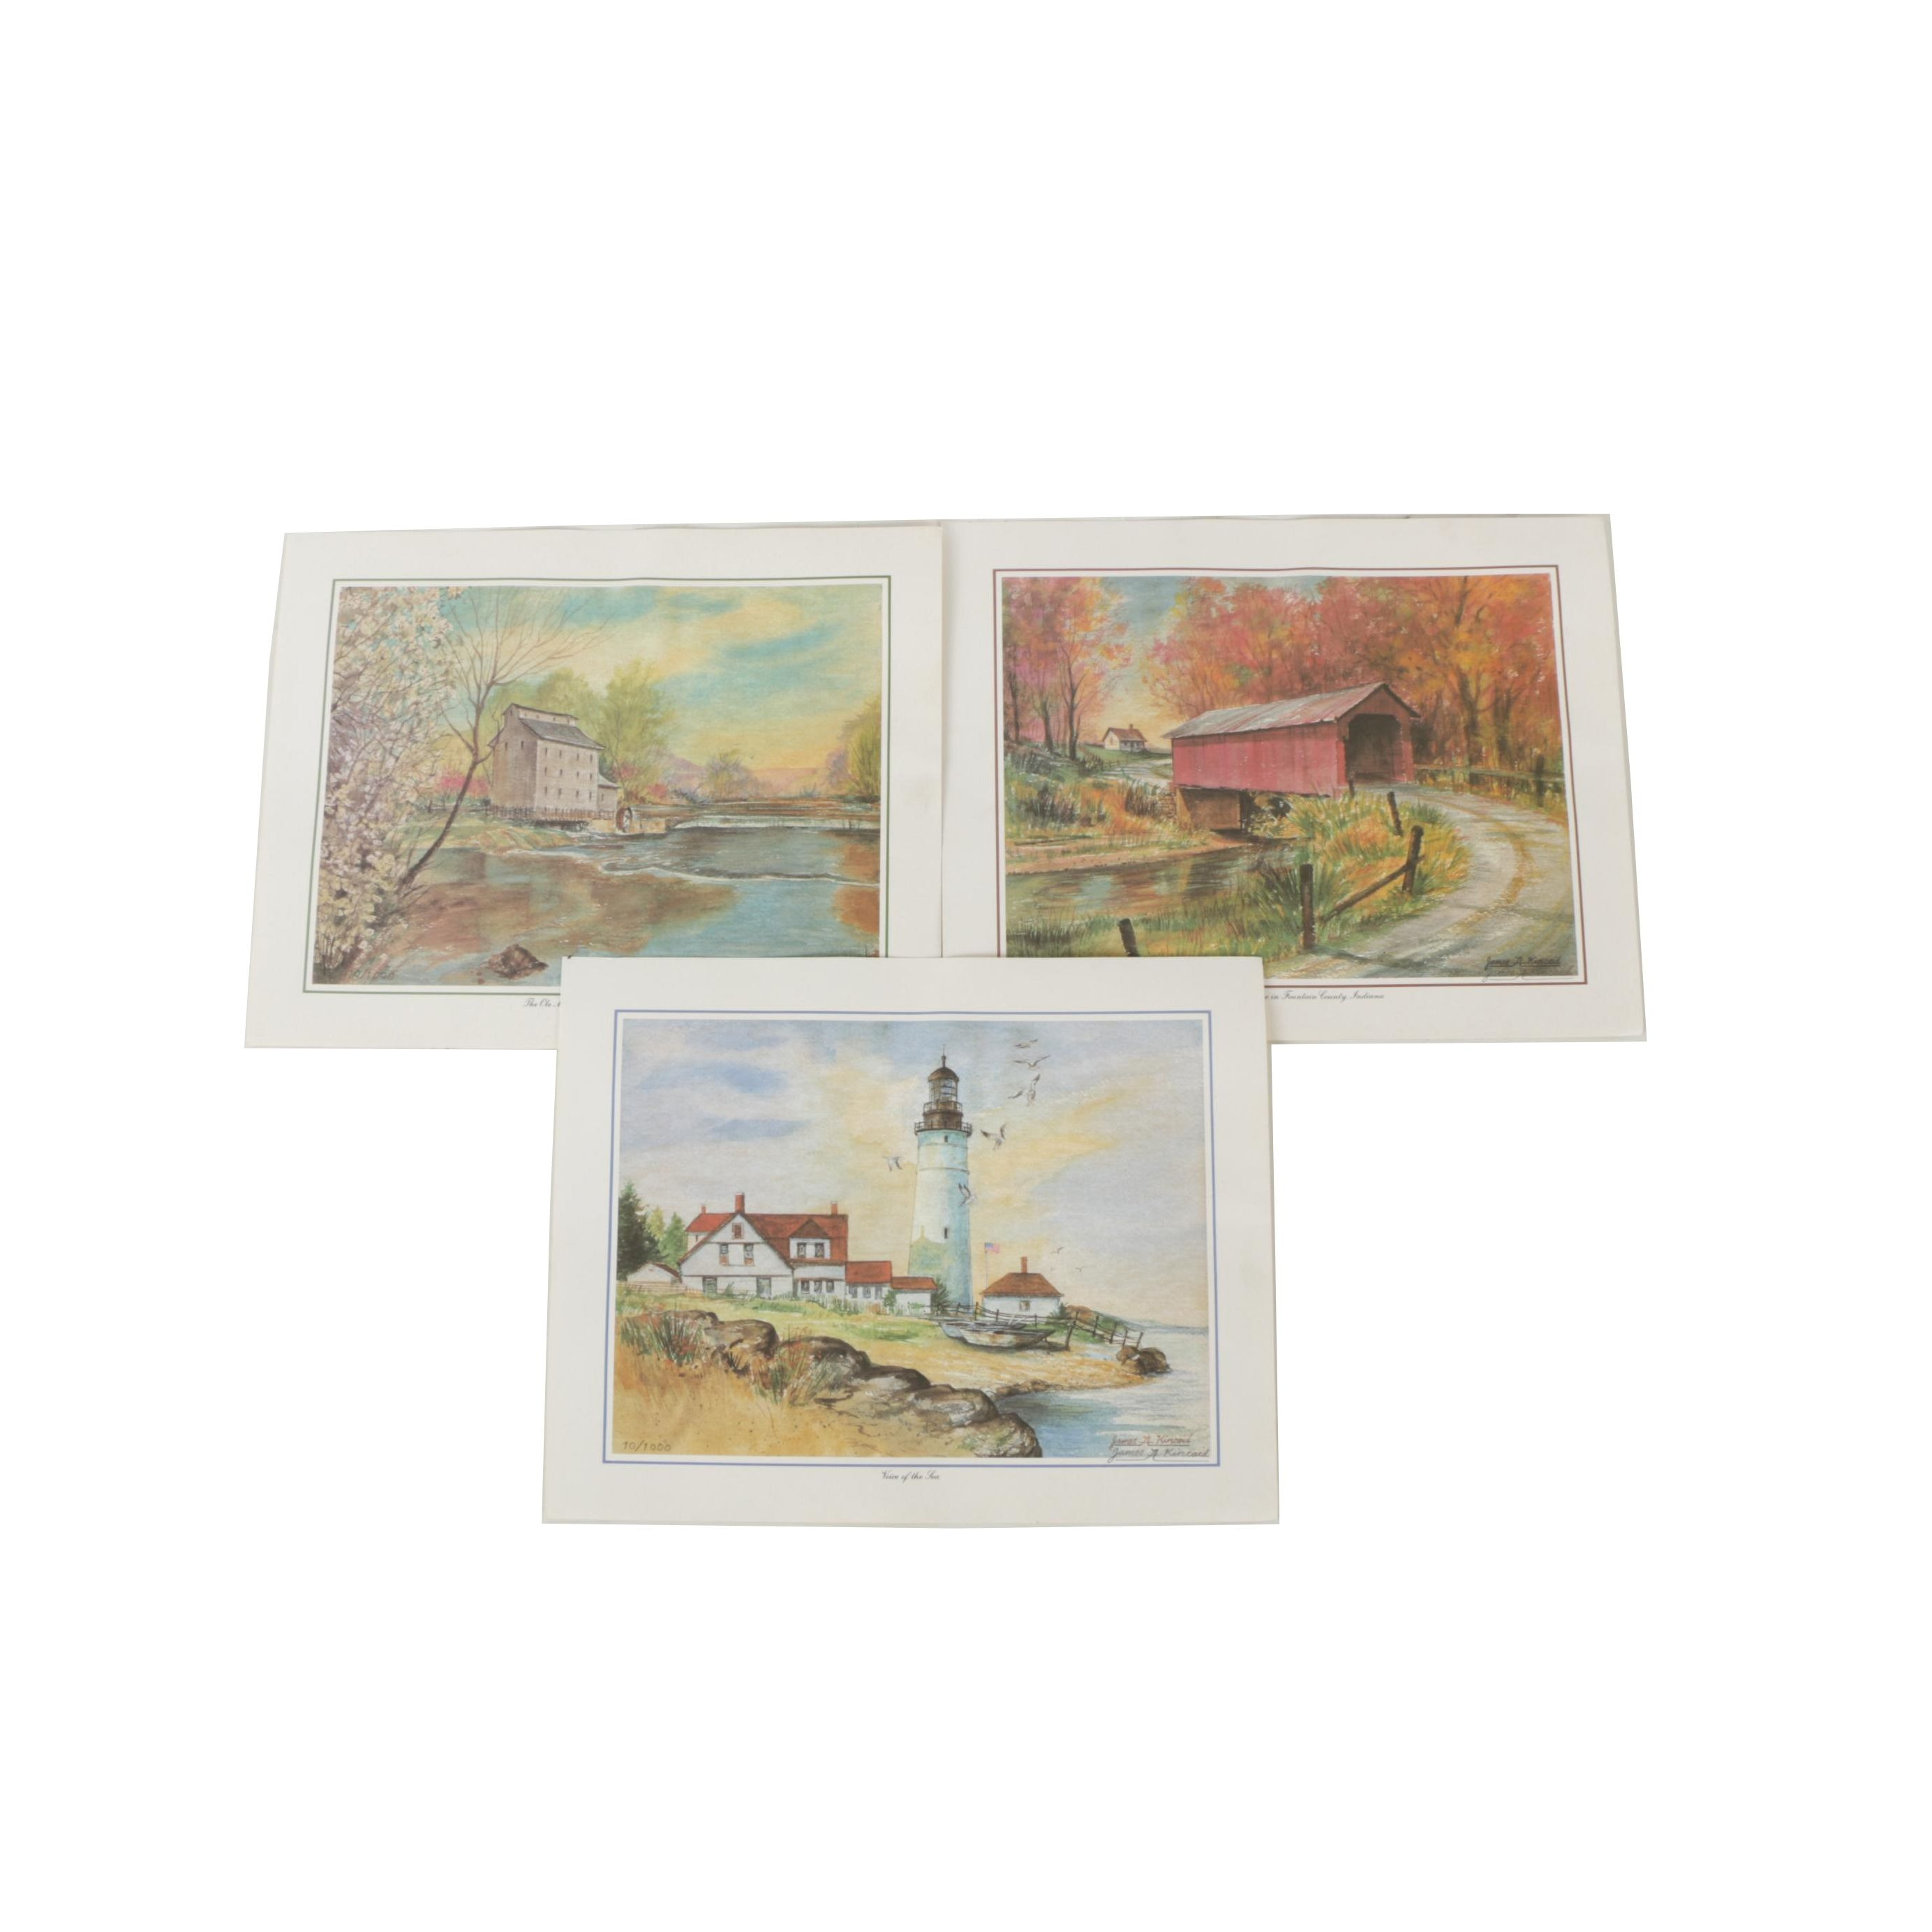 James A. Kincaid Limited Edition Offset Lithographs of Landscapes